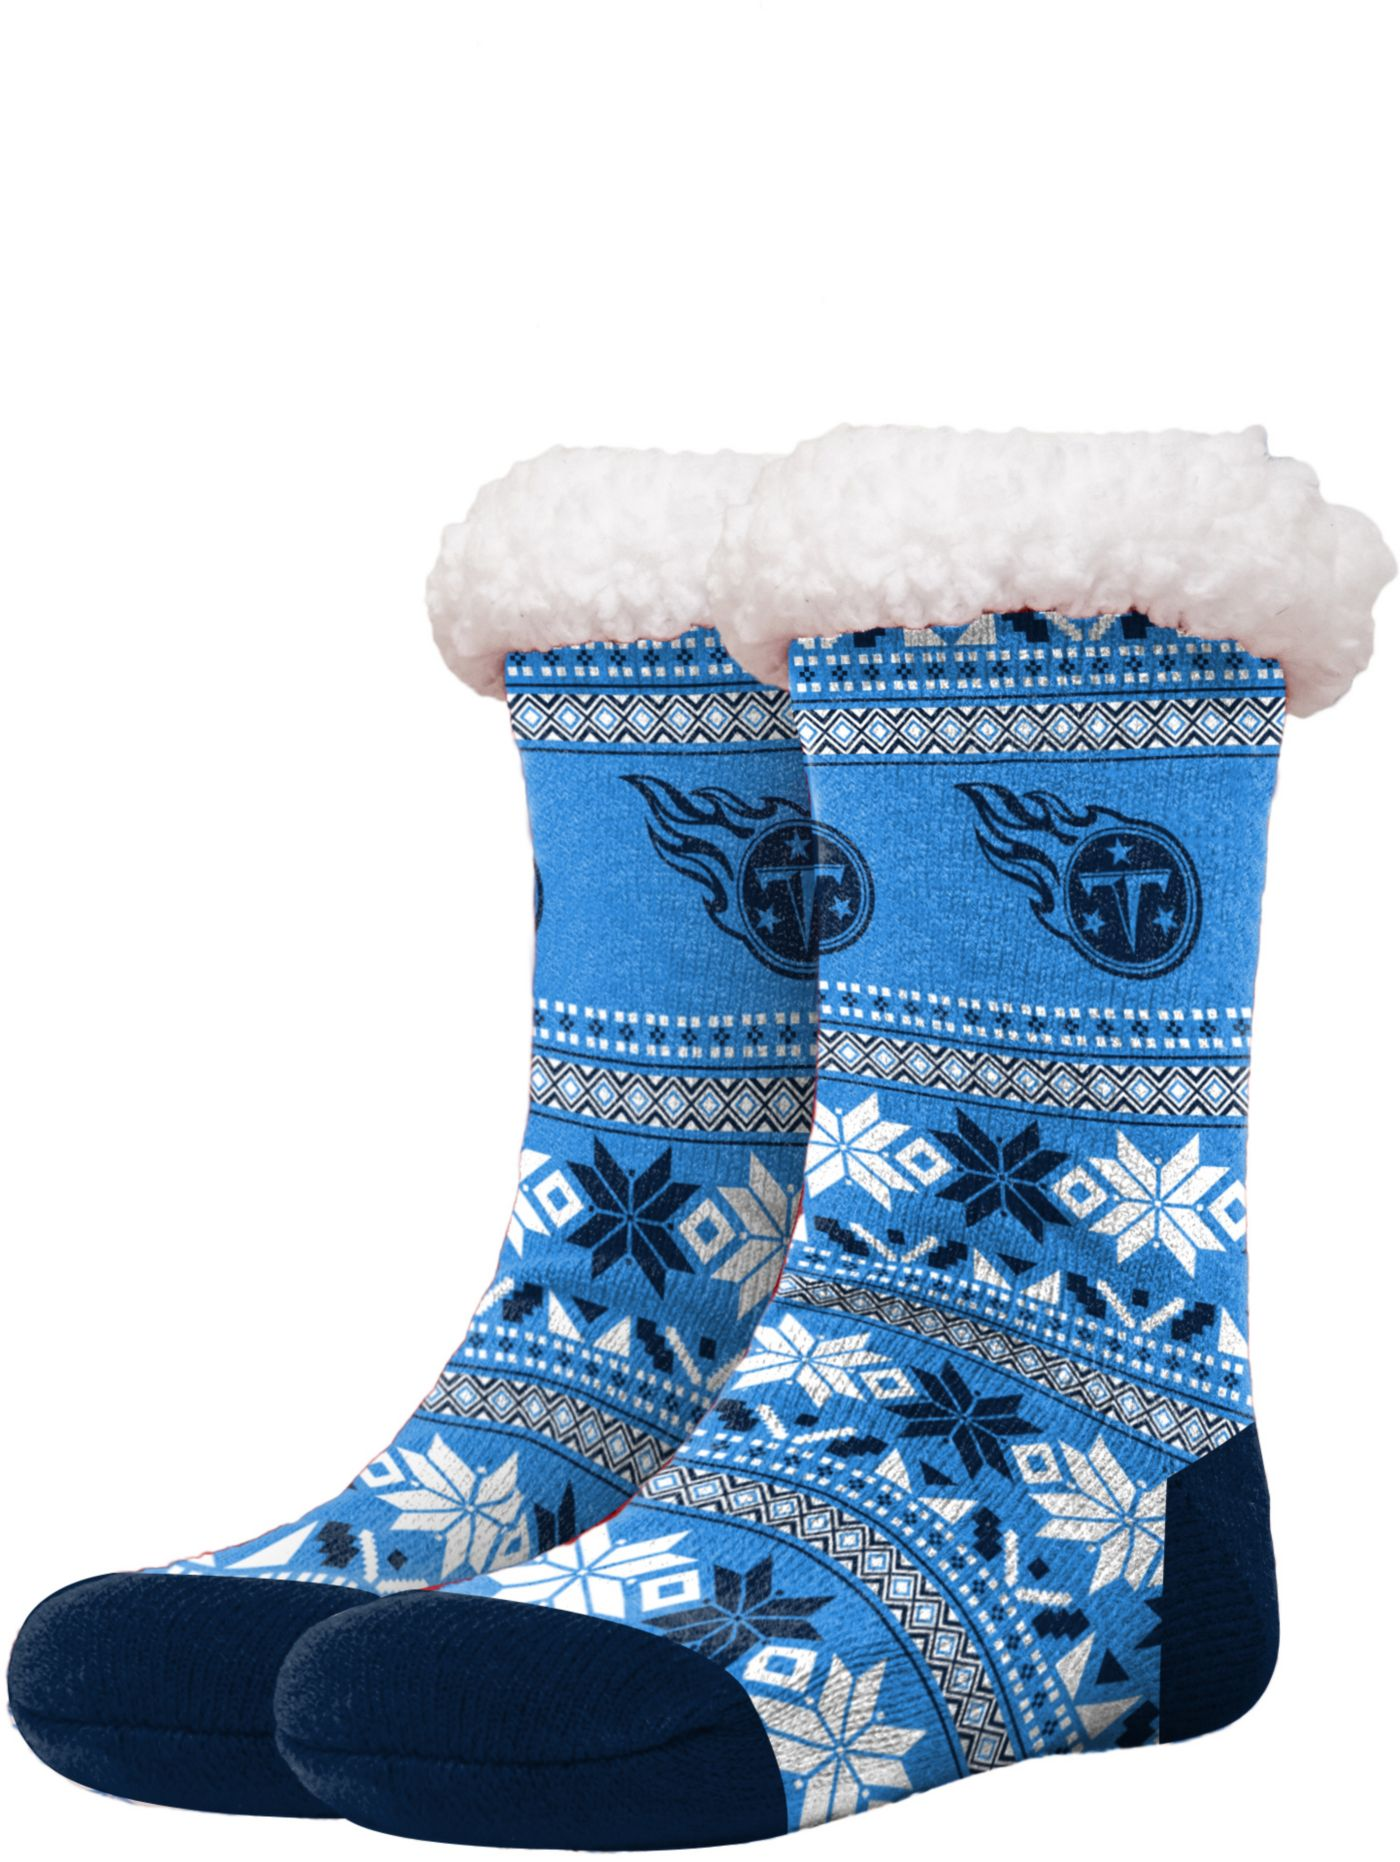 FOCO Tennessee Titans Footy Slippers